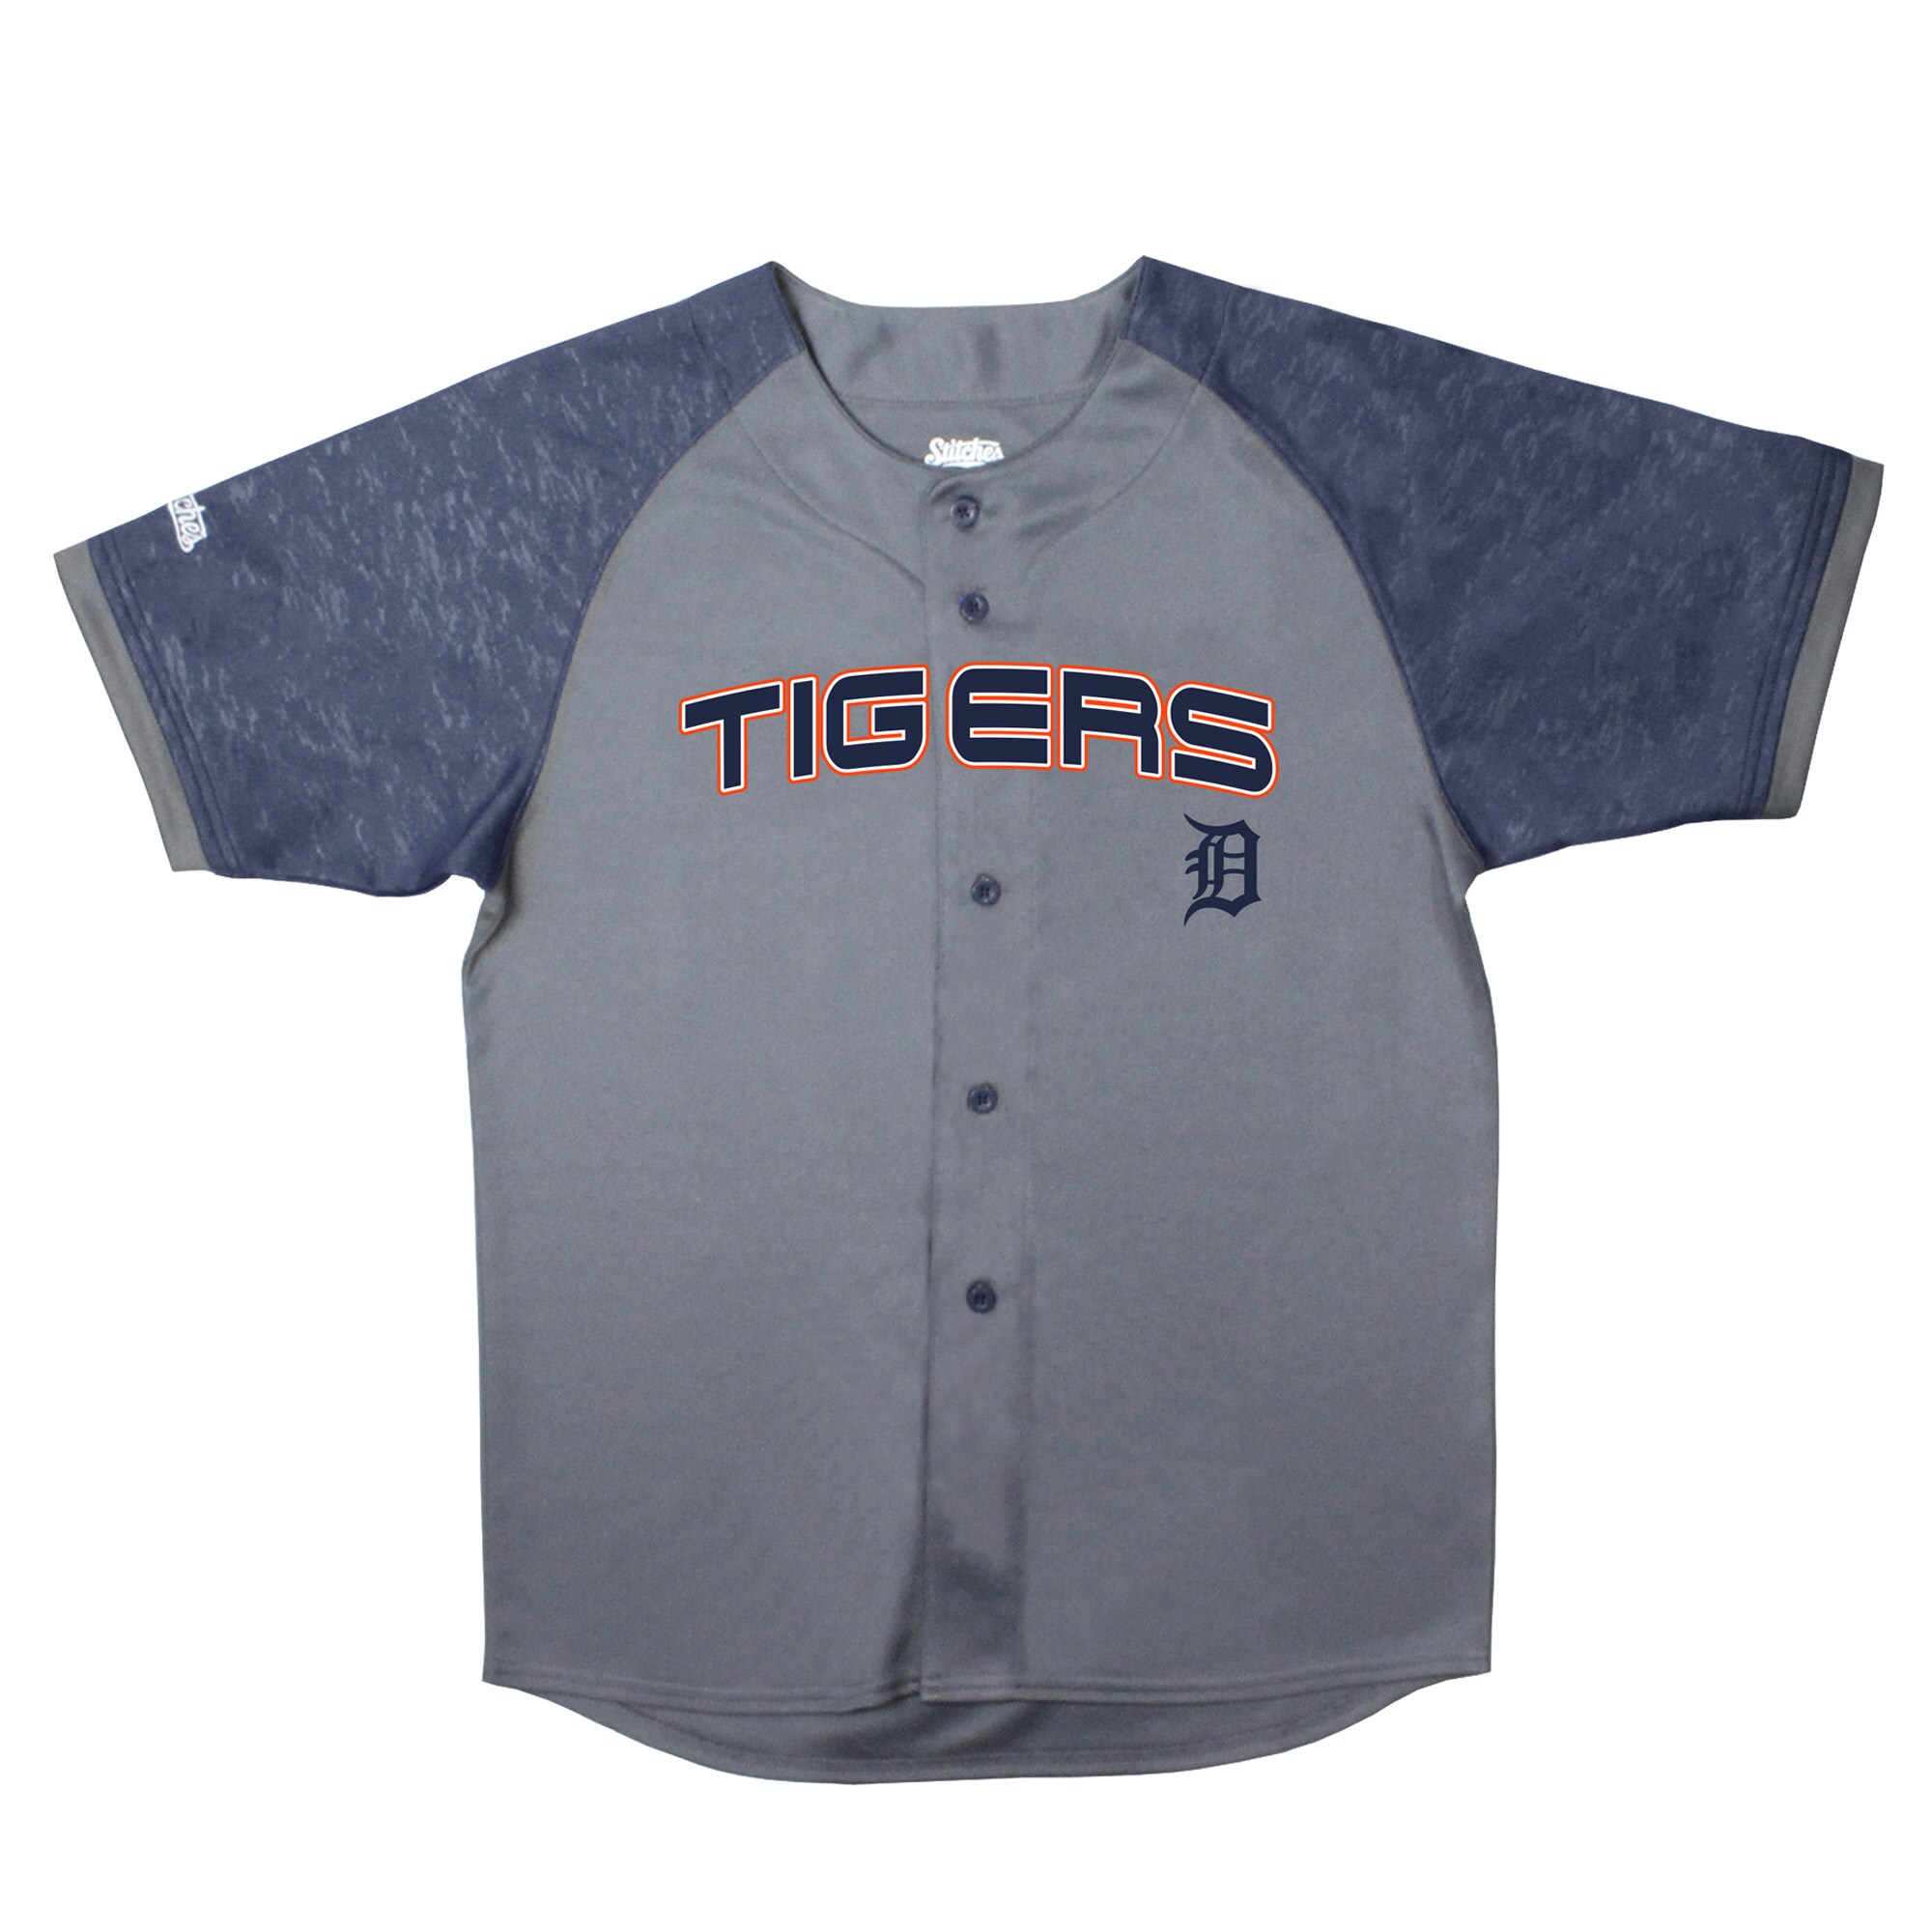 Detroit Tigers Stitches Youth Glitch Jersey - Charcoal/Navy